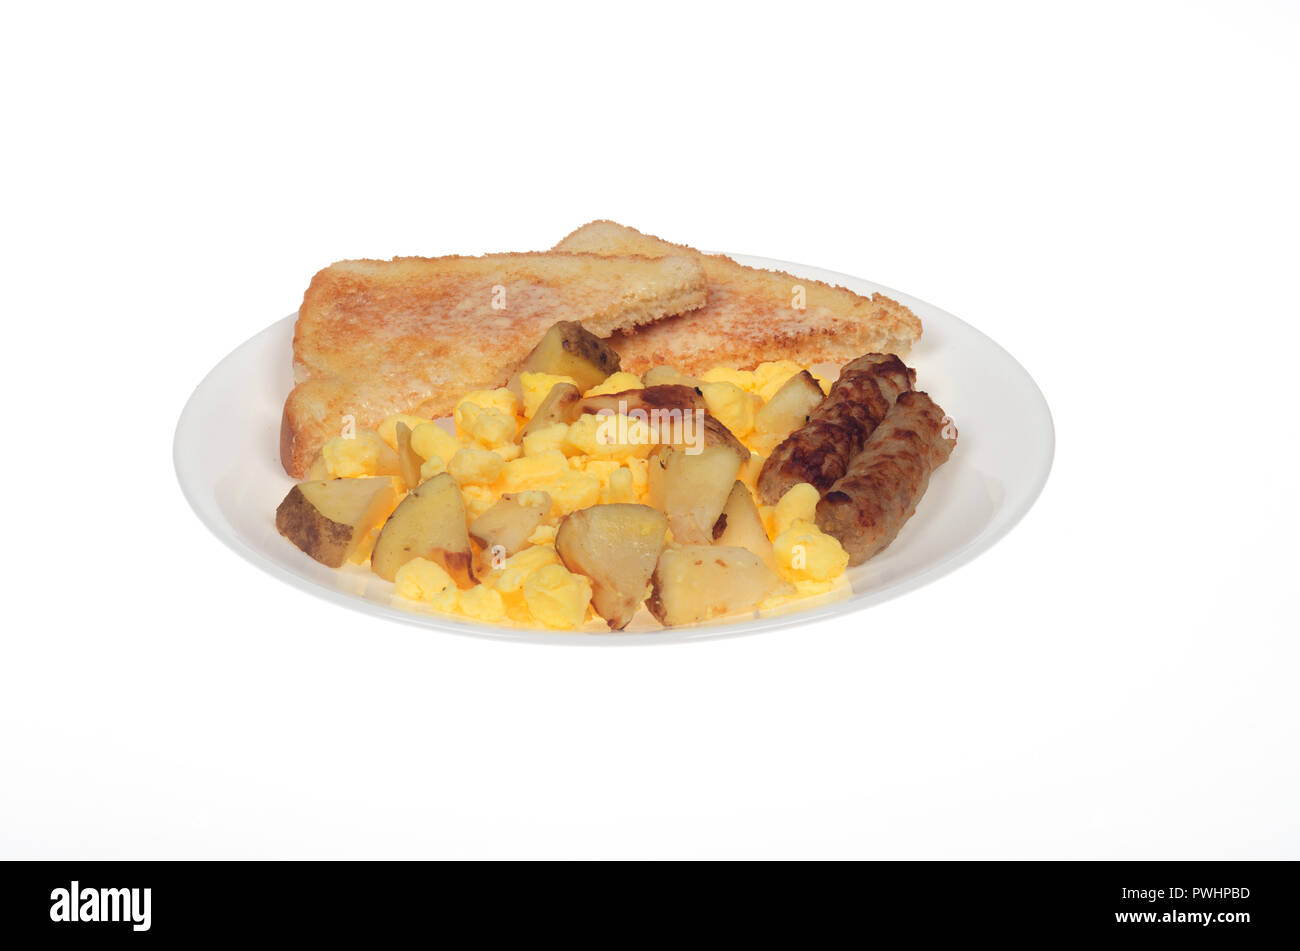 Scrambled eggs, oven roasted potatoes, sausage links and buttered white toast on white plate - Stock Image